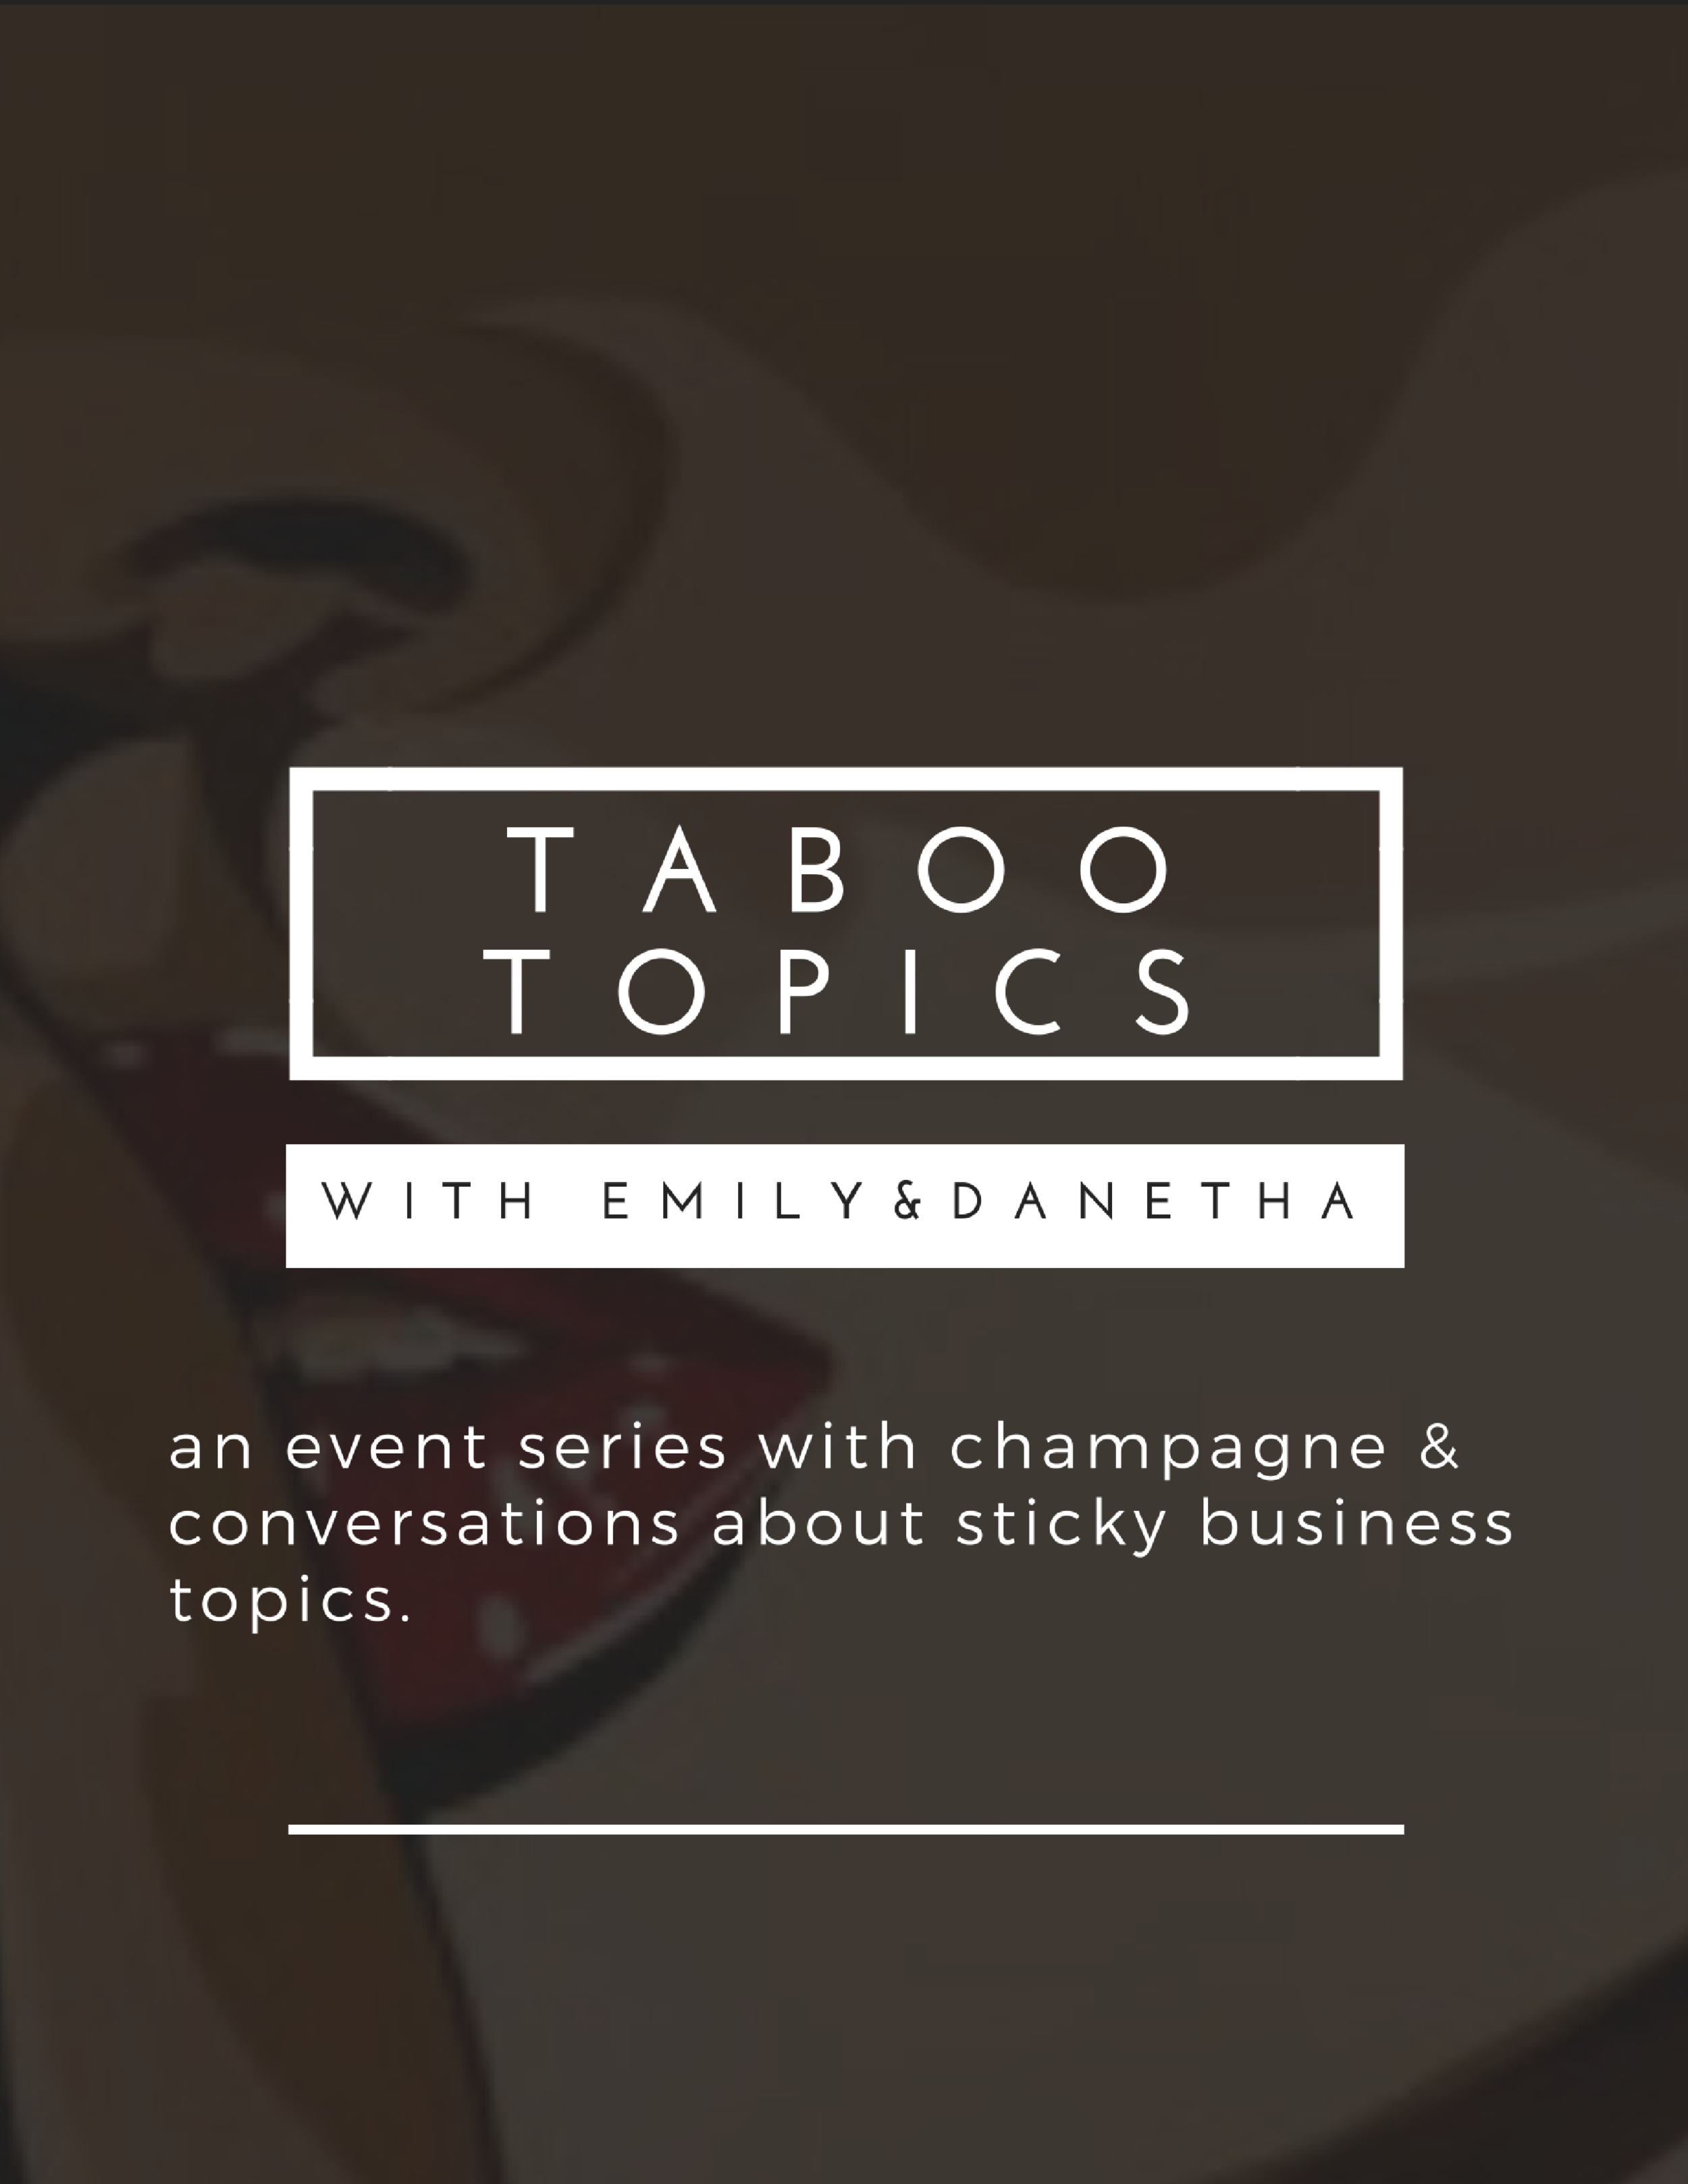 taboo topics with Emily & Danetha